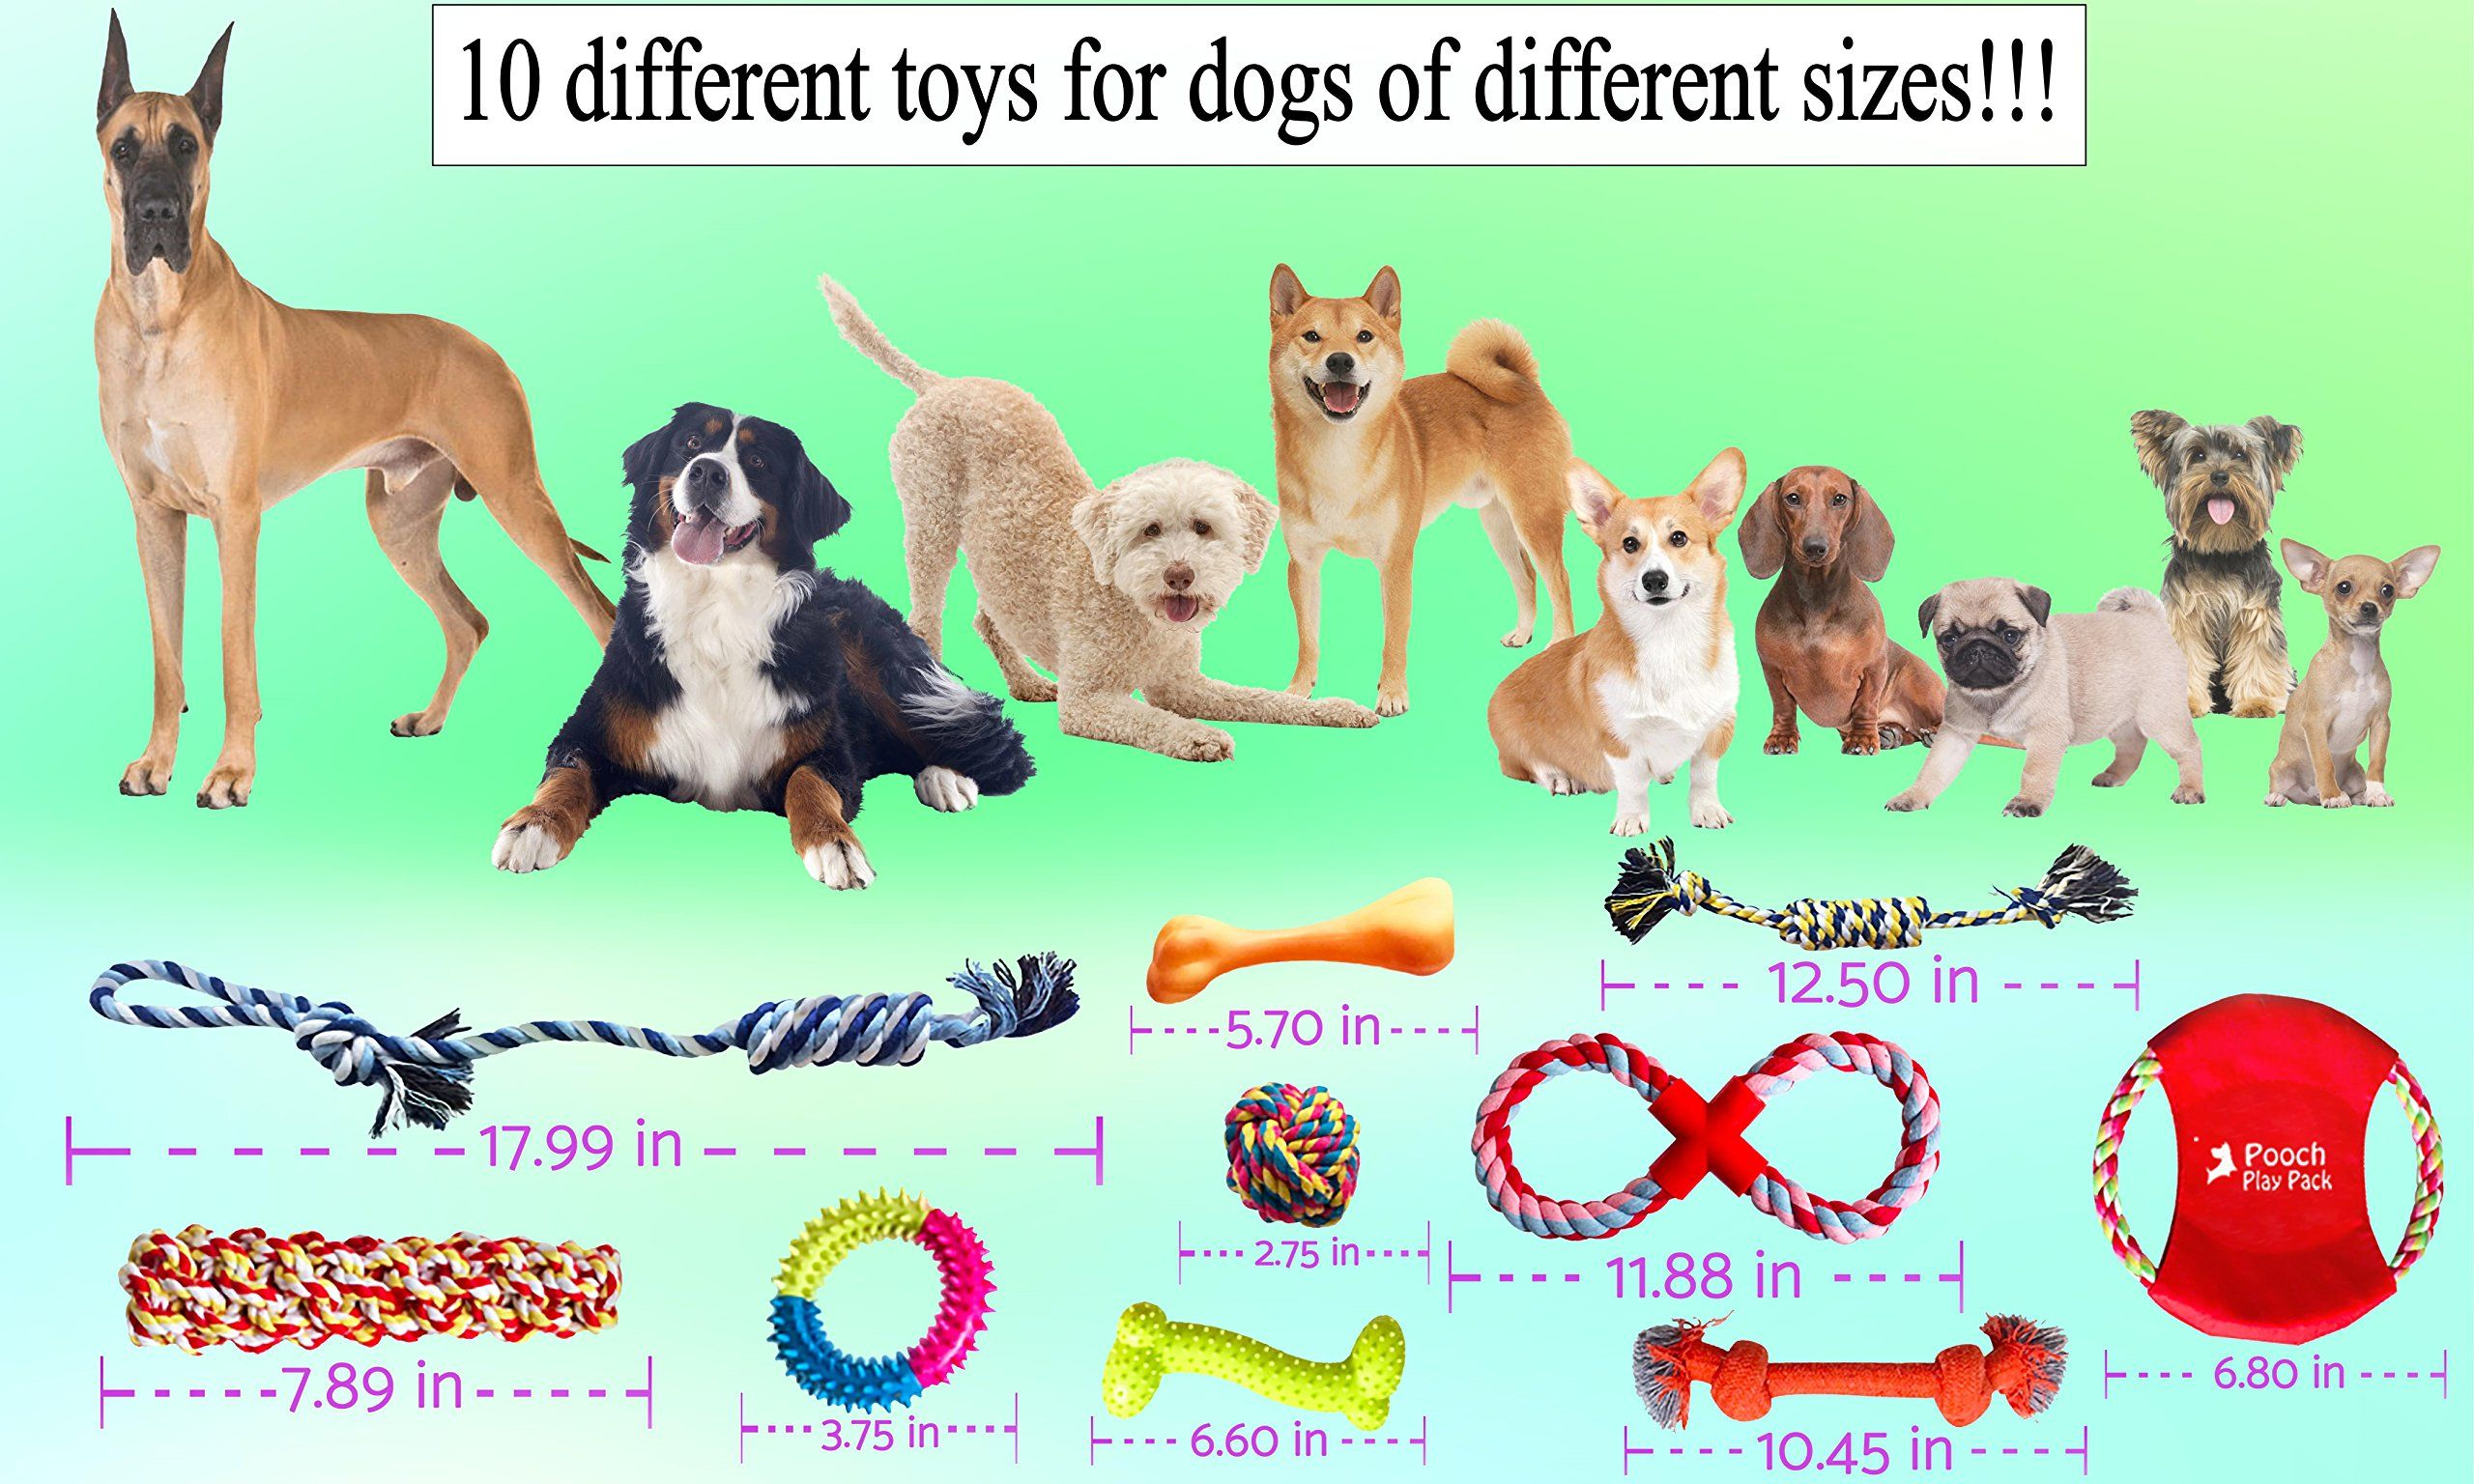 Dog Rope Toys 10 Piece Gift Set Interactive Chew Toy For Small Medium Large Dogs Durable Chewy Squeaky Ropes Tug Assortment Teething To Dog Toys Interactive Puppy Puppy Chew Toys